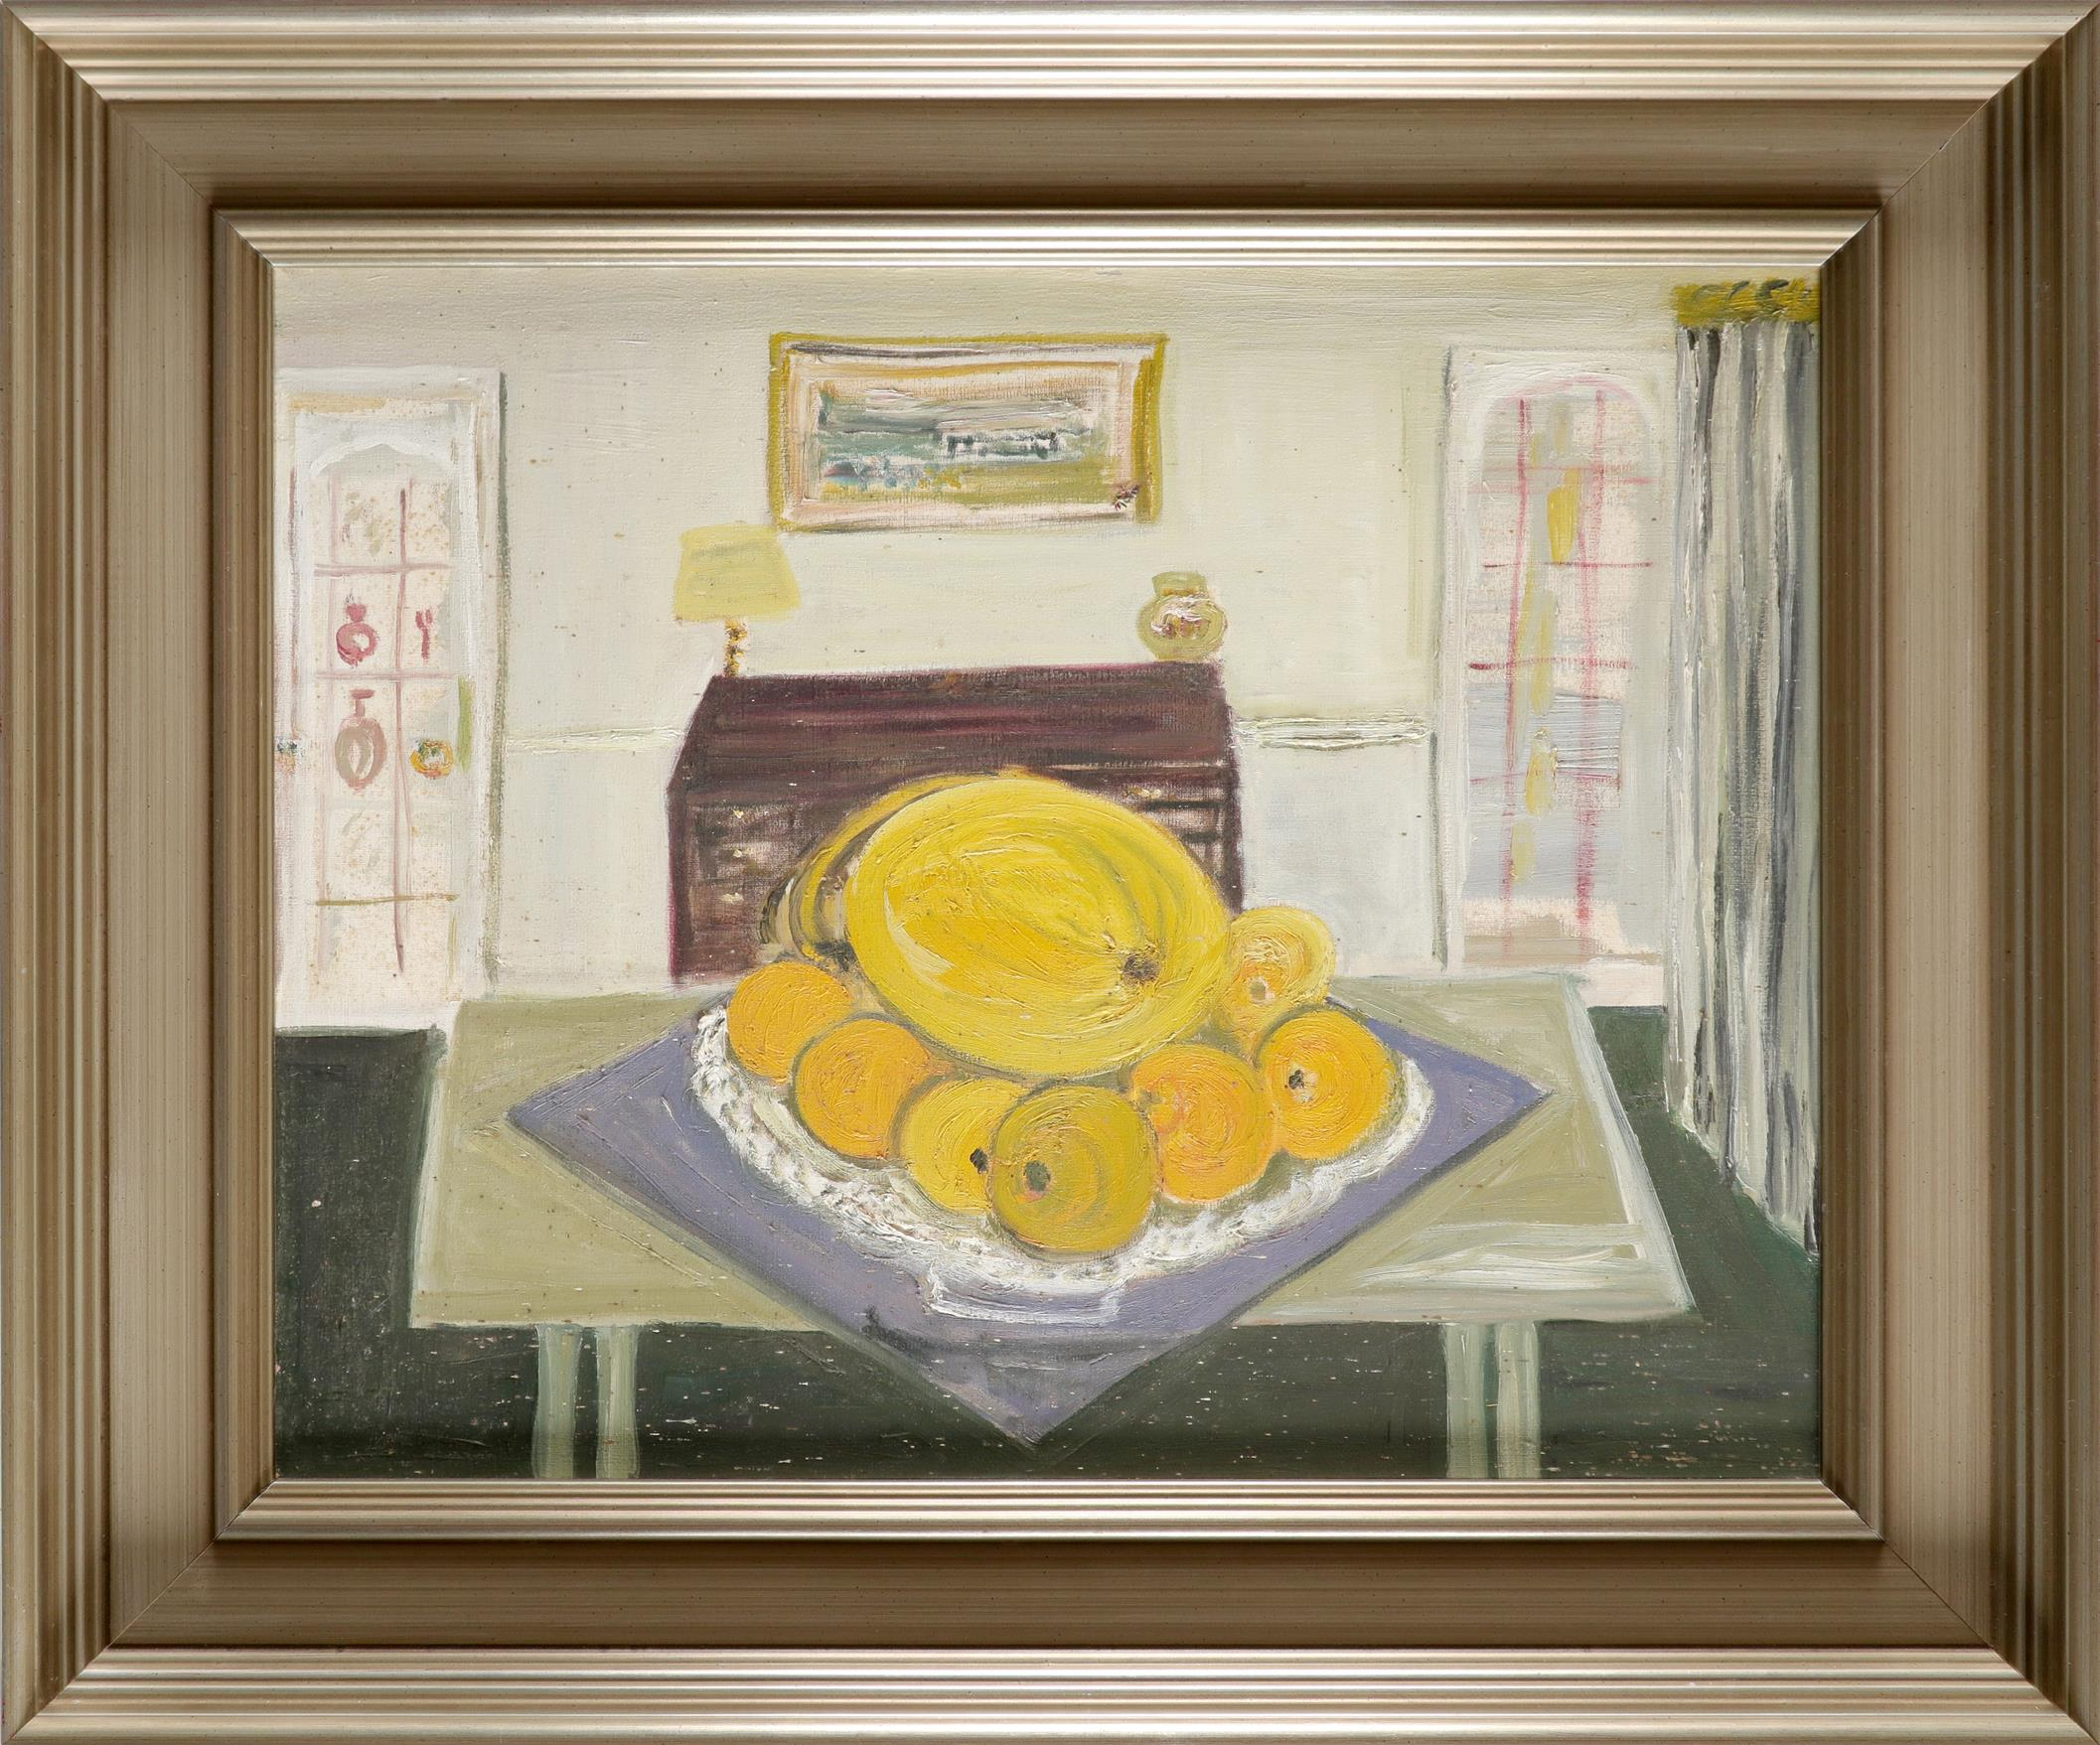 ‡Muriel Pemberton RWS (1909-1993) Still life with fruit on a kitchen table Oil on canvas 39 x 49.4cm - Image 2 of 3